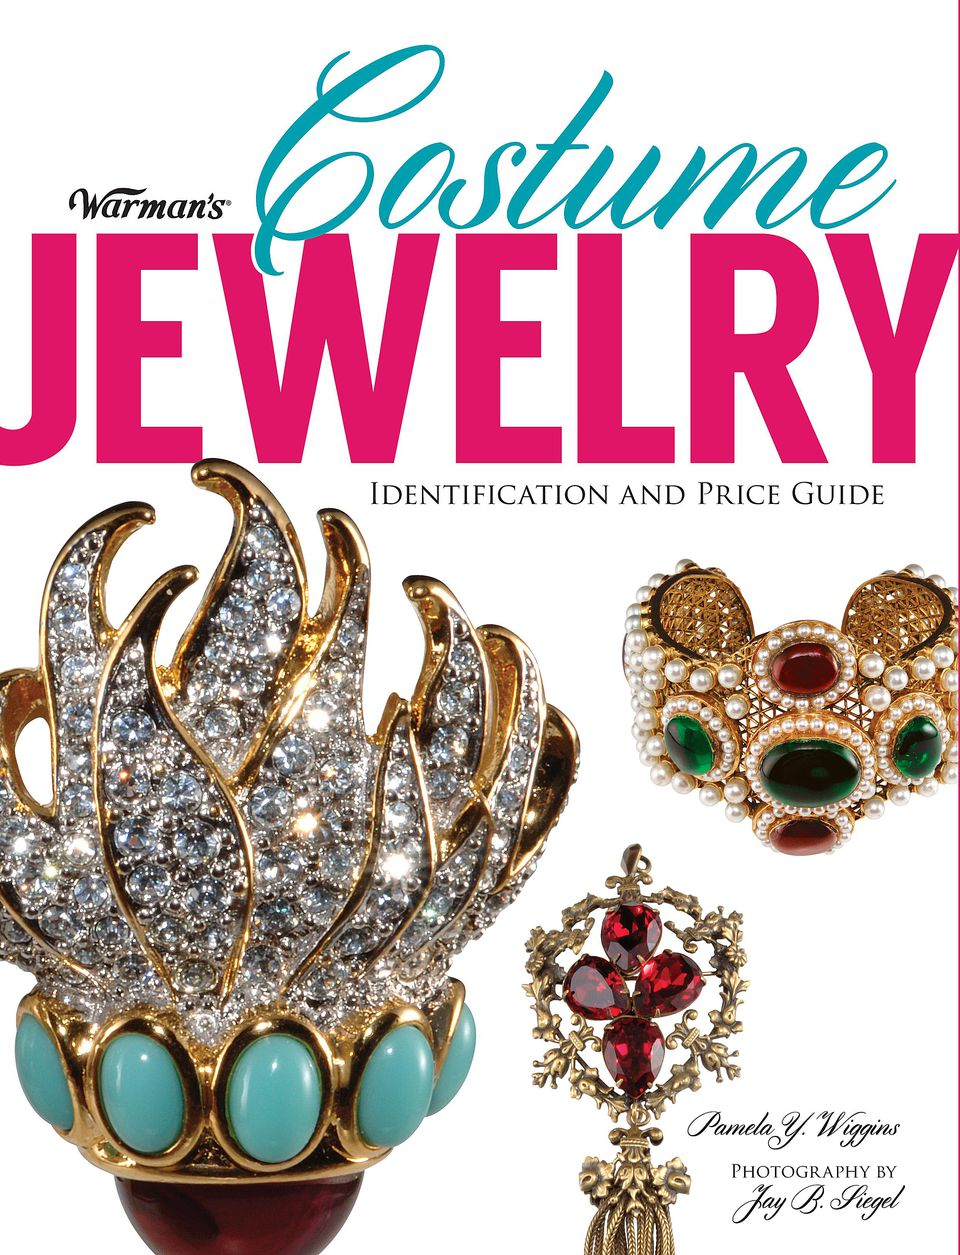 Recommended Vintage Costume Jewelry Reference Guides